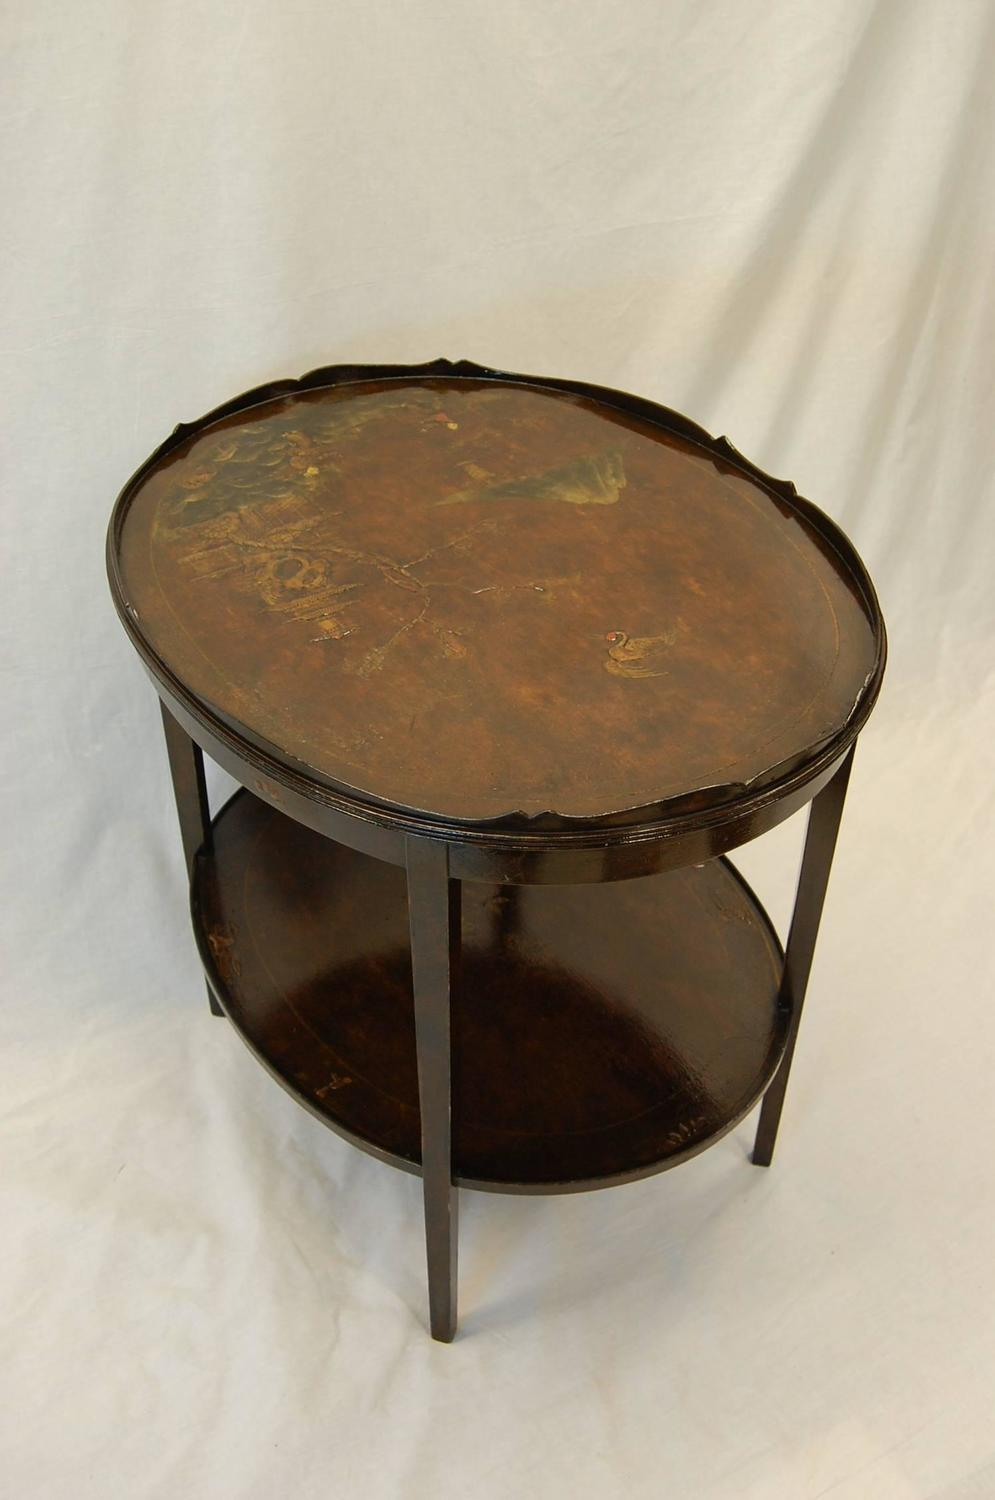 Chinoiserie decorated oval table with wood gallery and